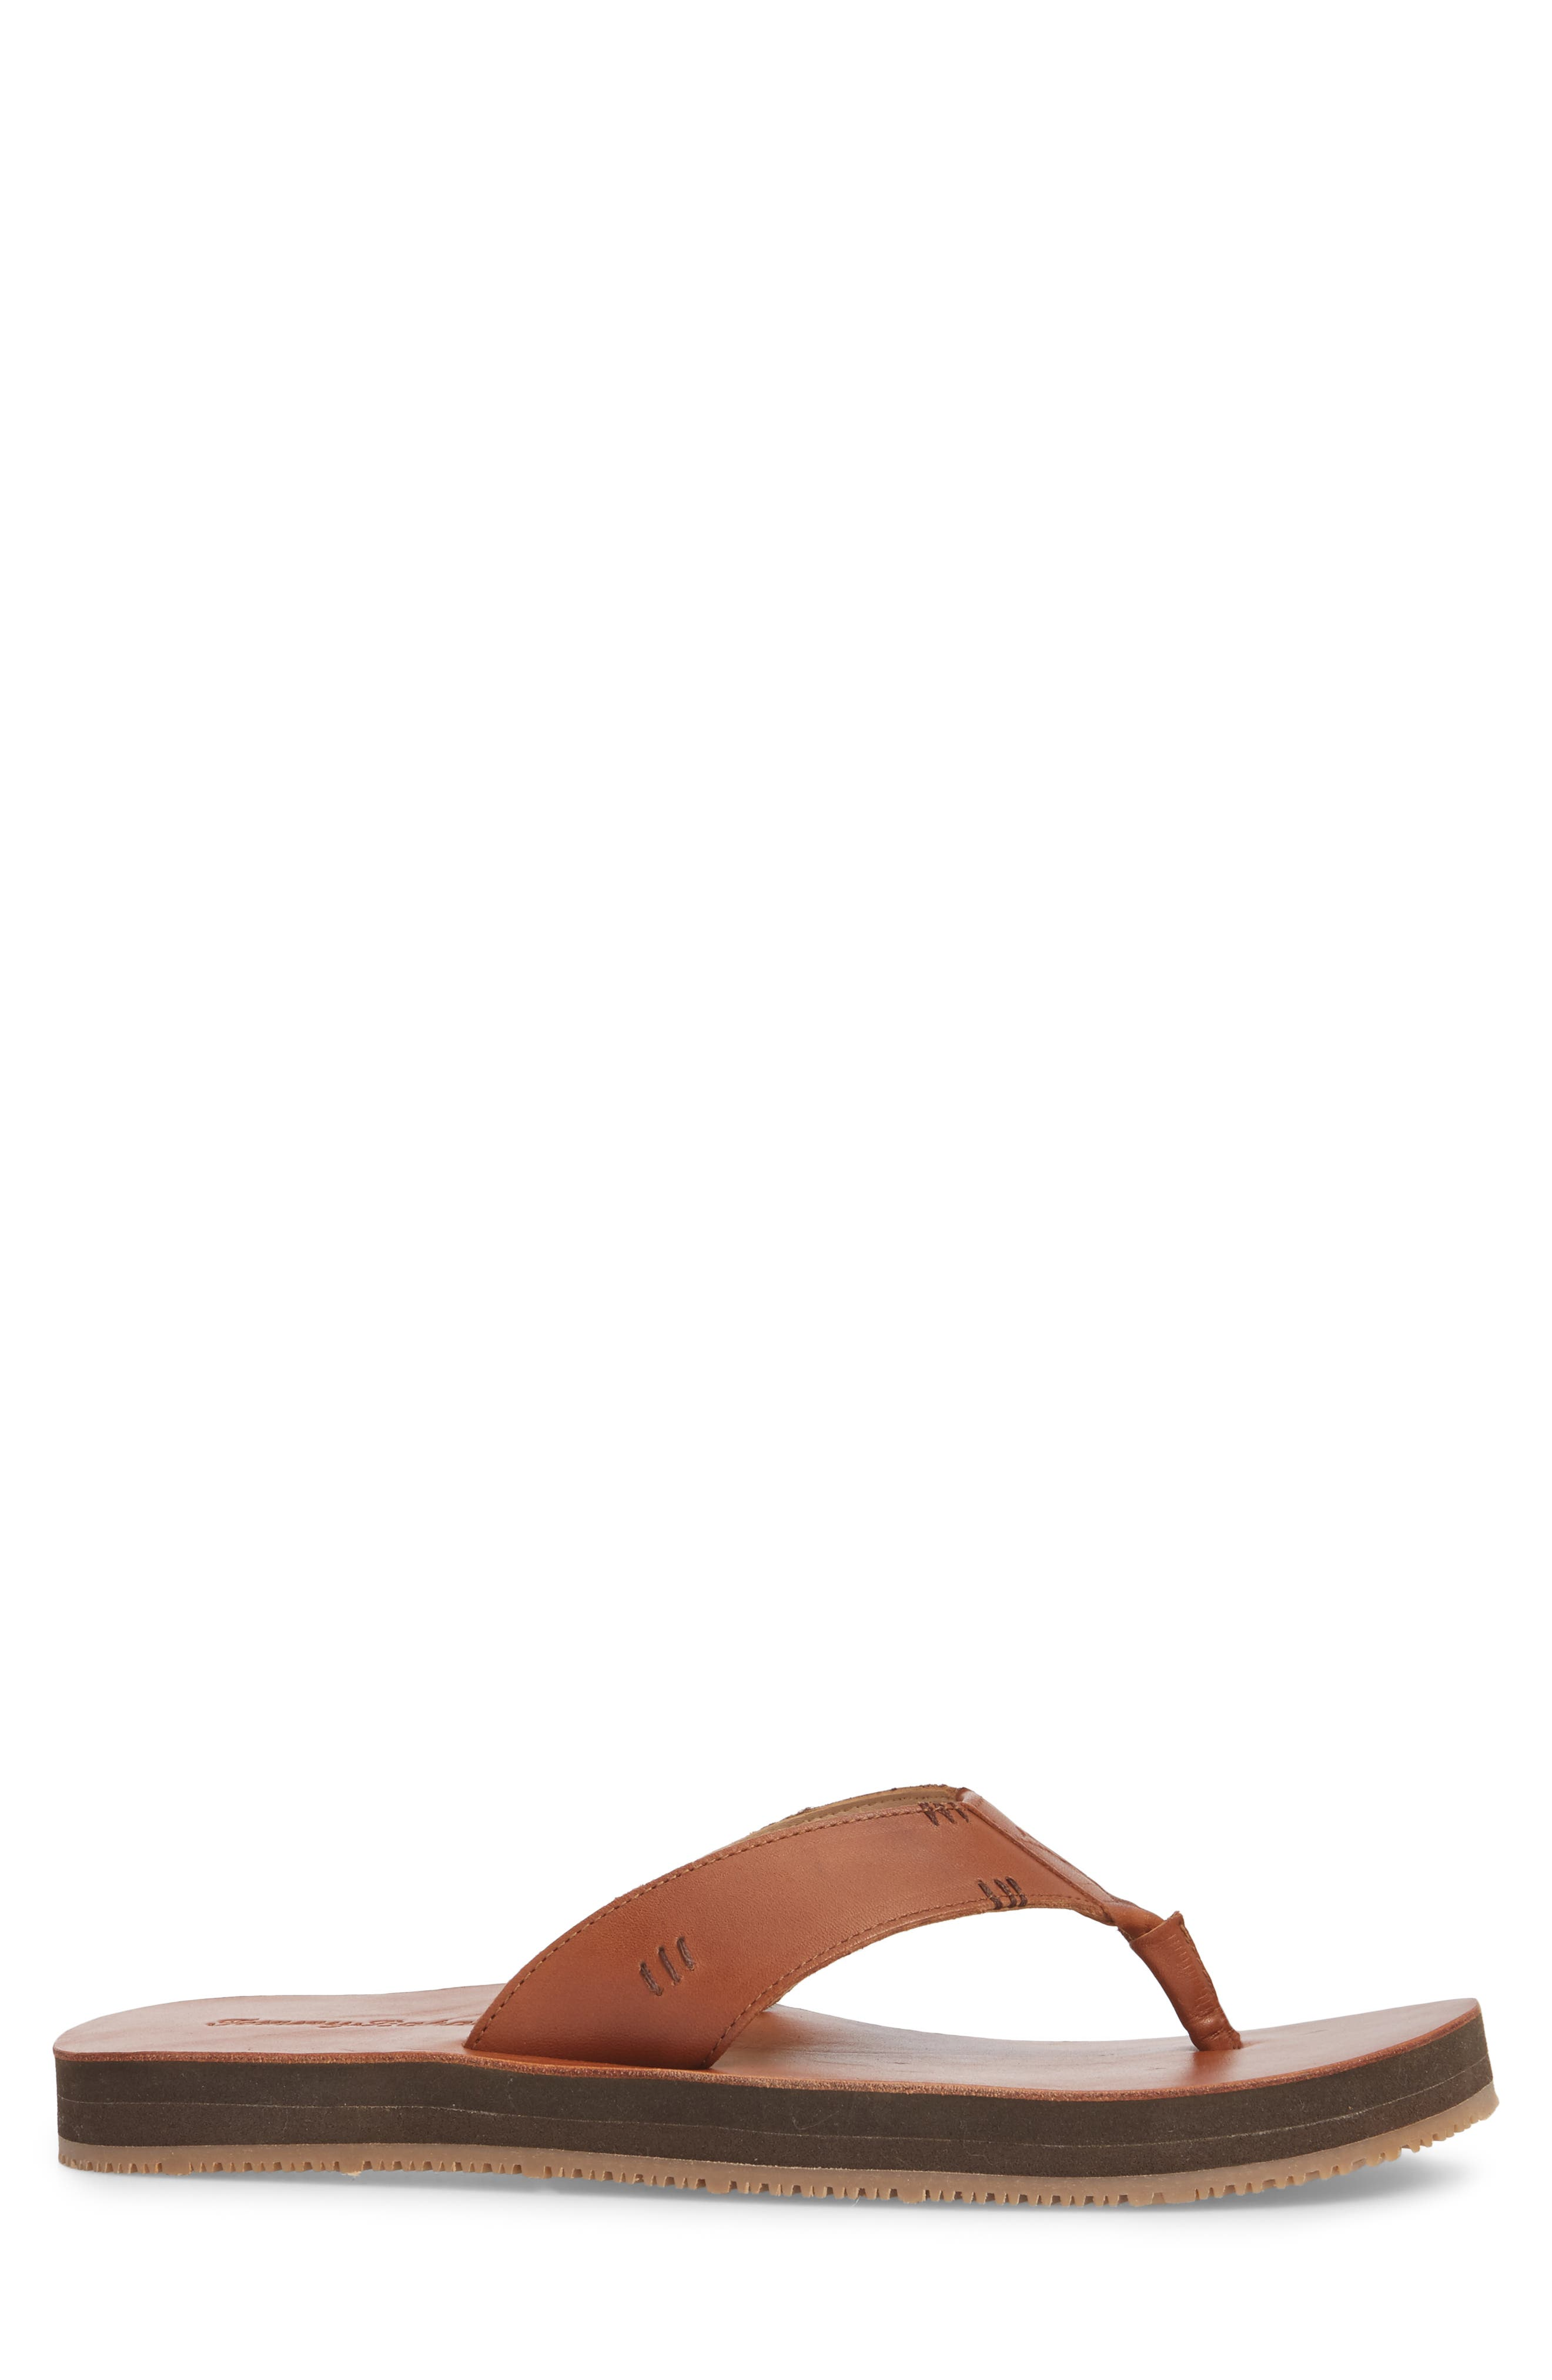 TOMMY BAHAMA, Adderly Flip Flop, Alternate thumbnail 3, color, TAN LEATHER